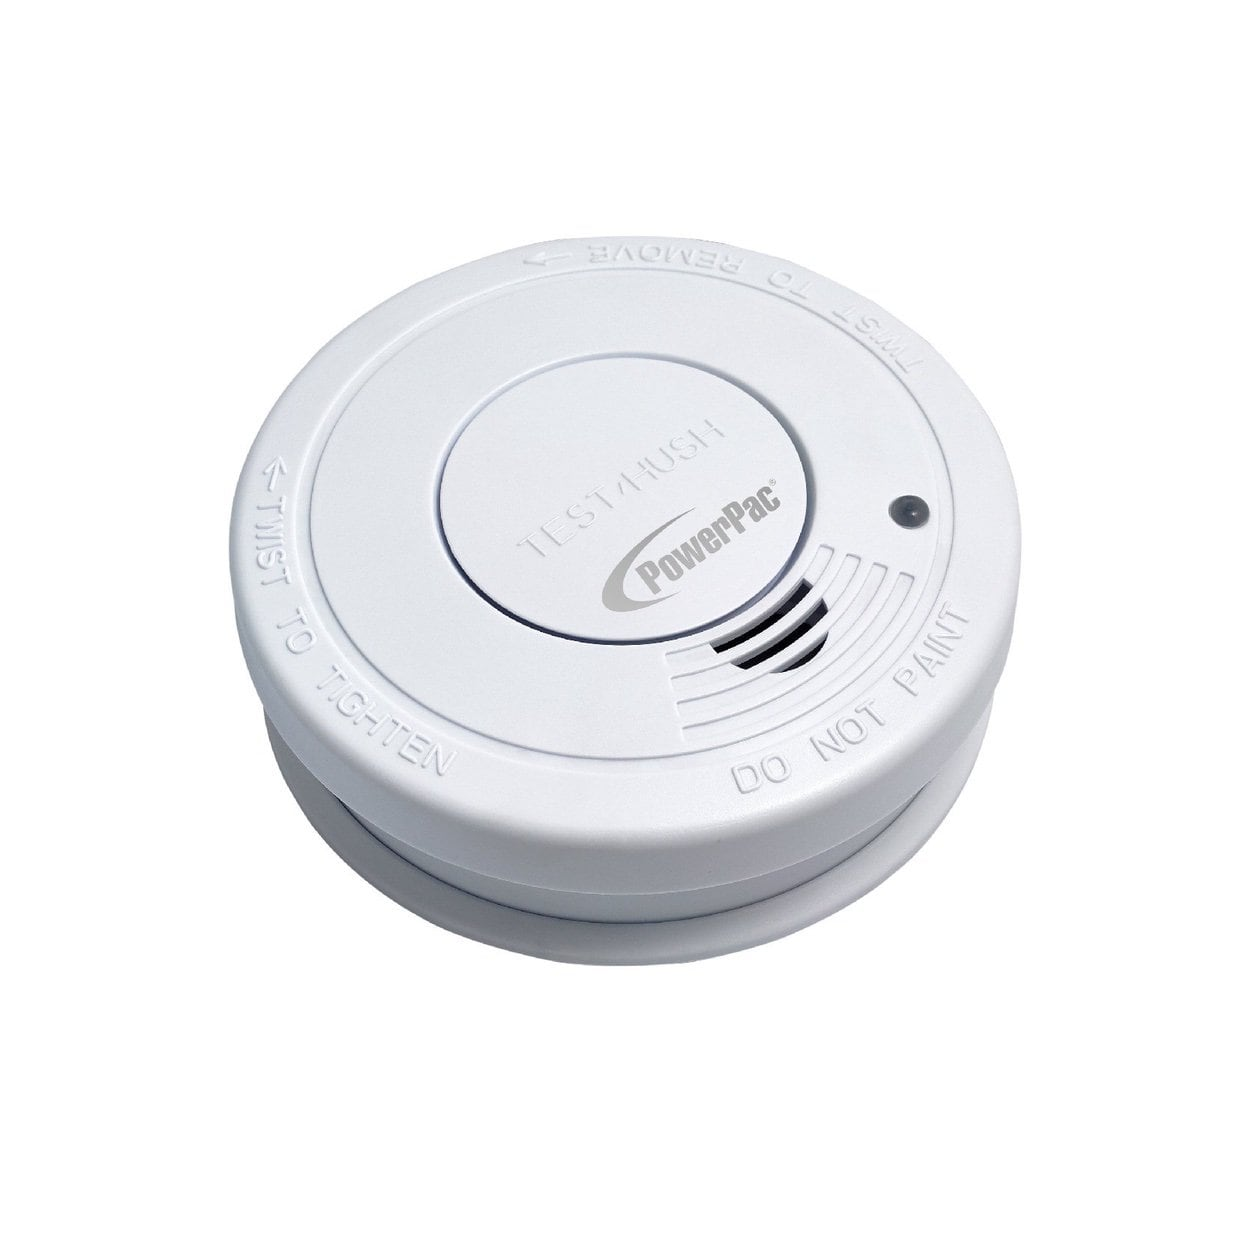 PowerPac Smoke Detector with HUSH function (PPSD127)